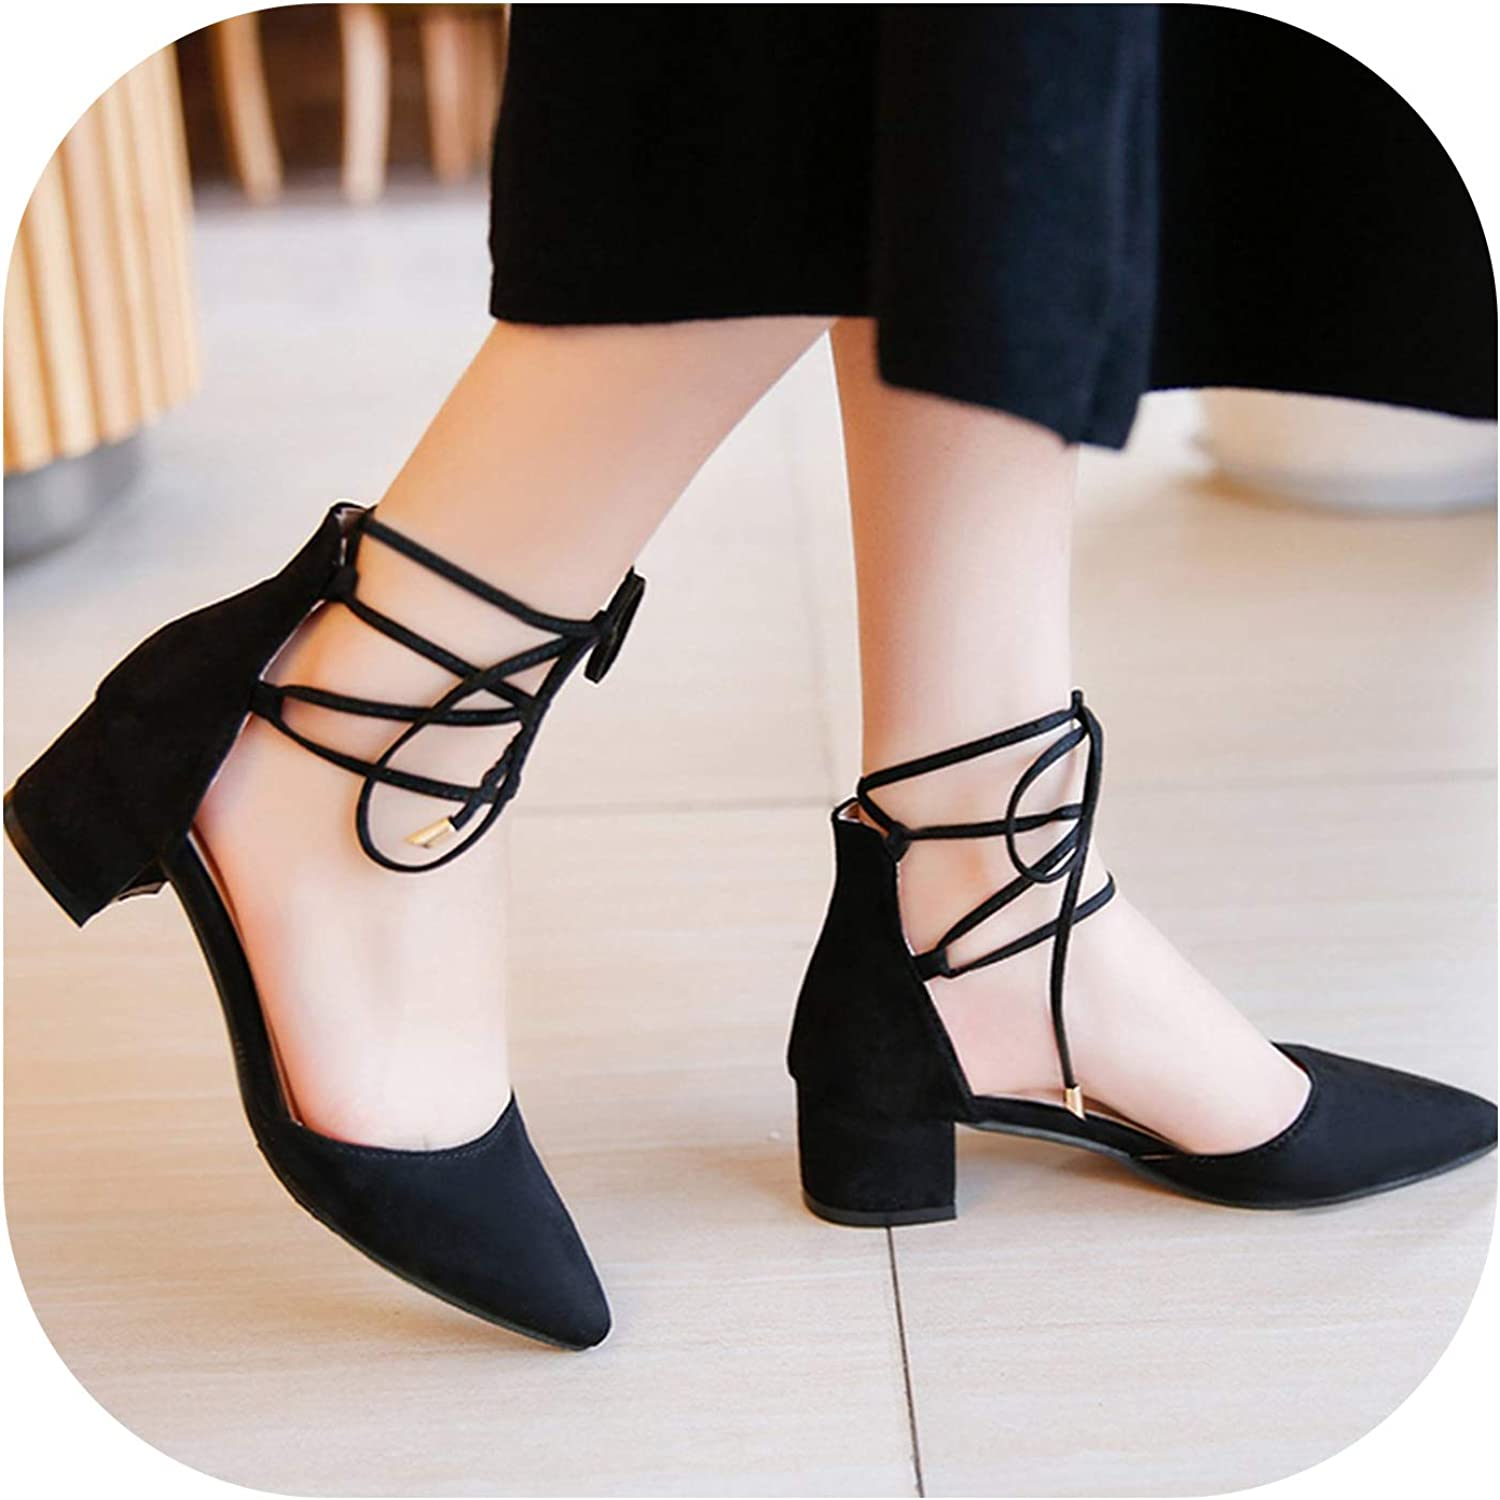 Betterluse Shallow Flats Summer Cross-Tied Women Sandals Lace Up Pumps Pointed Toe Square Heeled Ladies Dress shoes